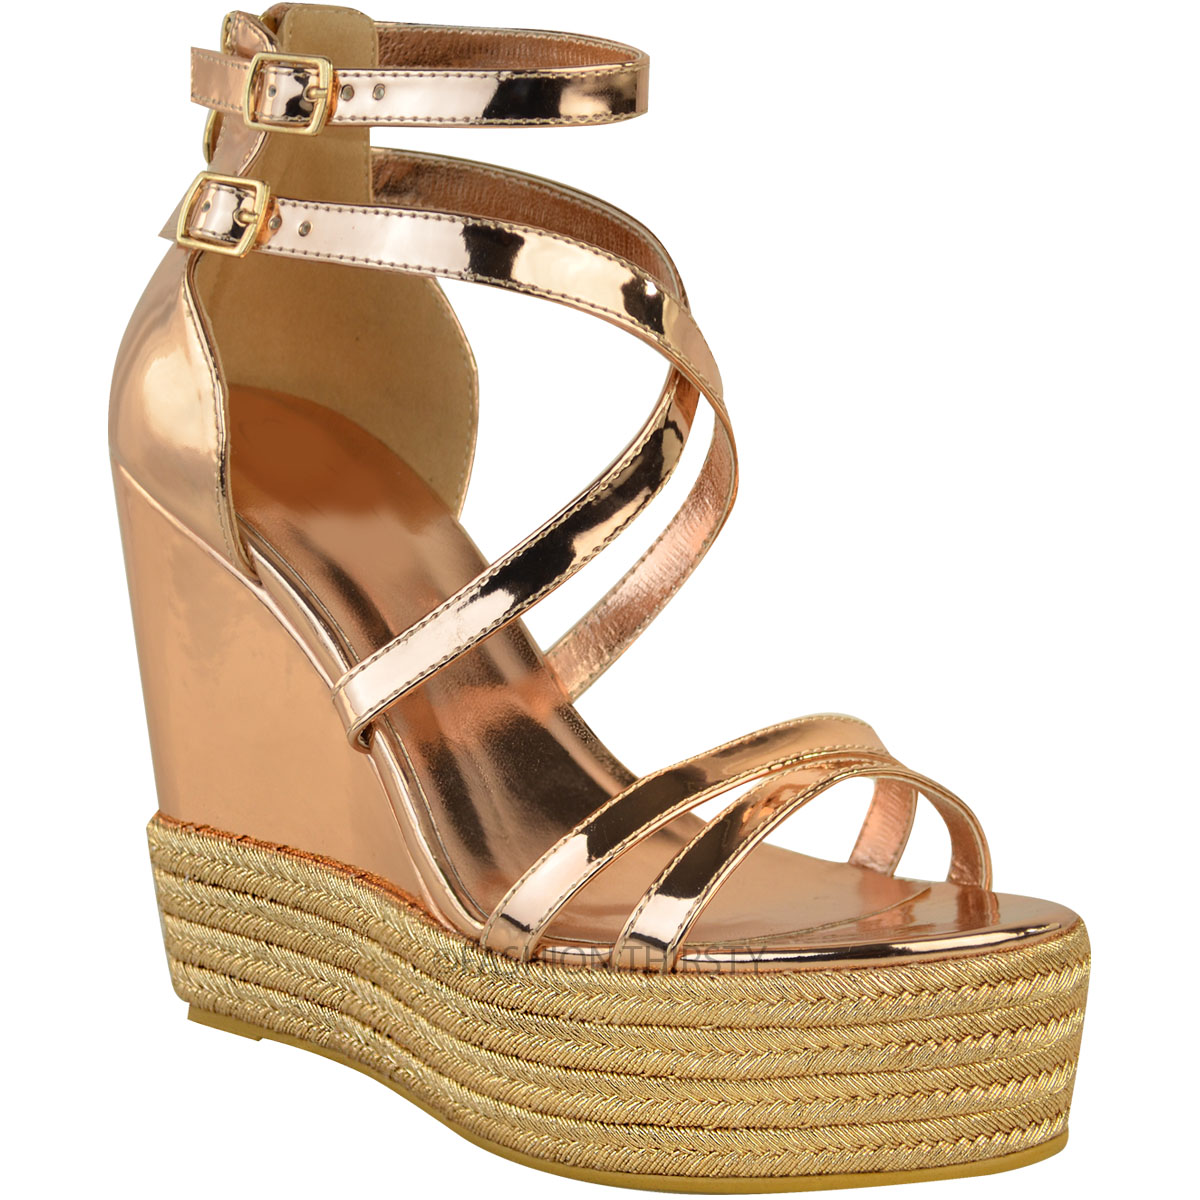 New-Womens-Ladies-Wedge-Espadrille-Sandals-Strappy-Rose-Gold-Summer-Shoes-Size thumbnail 3